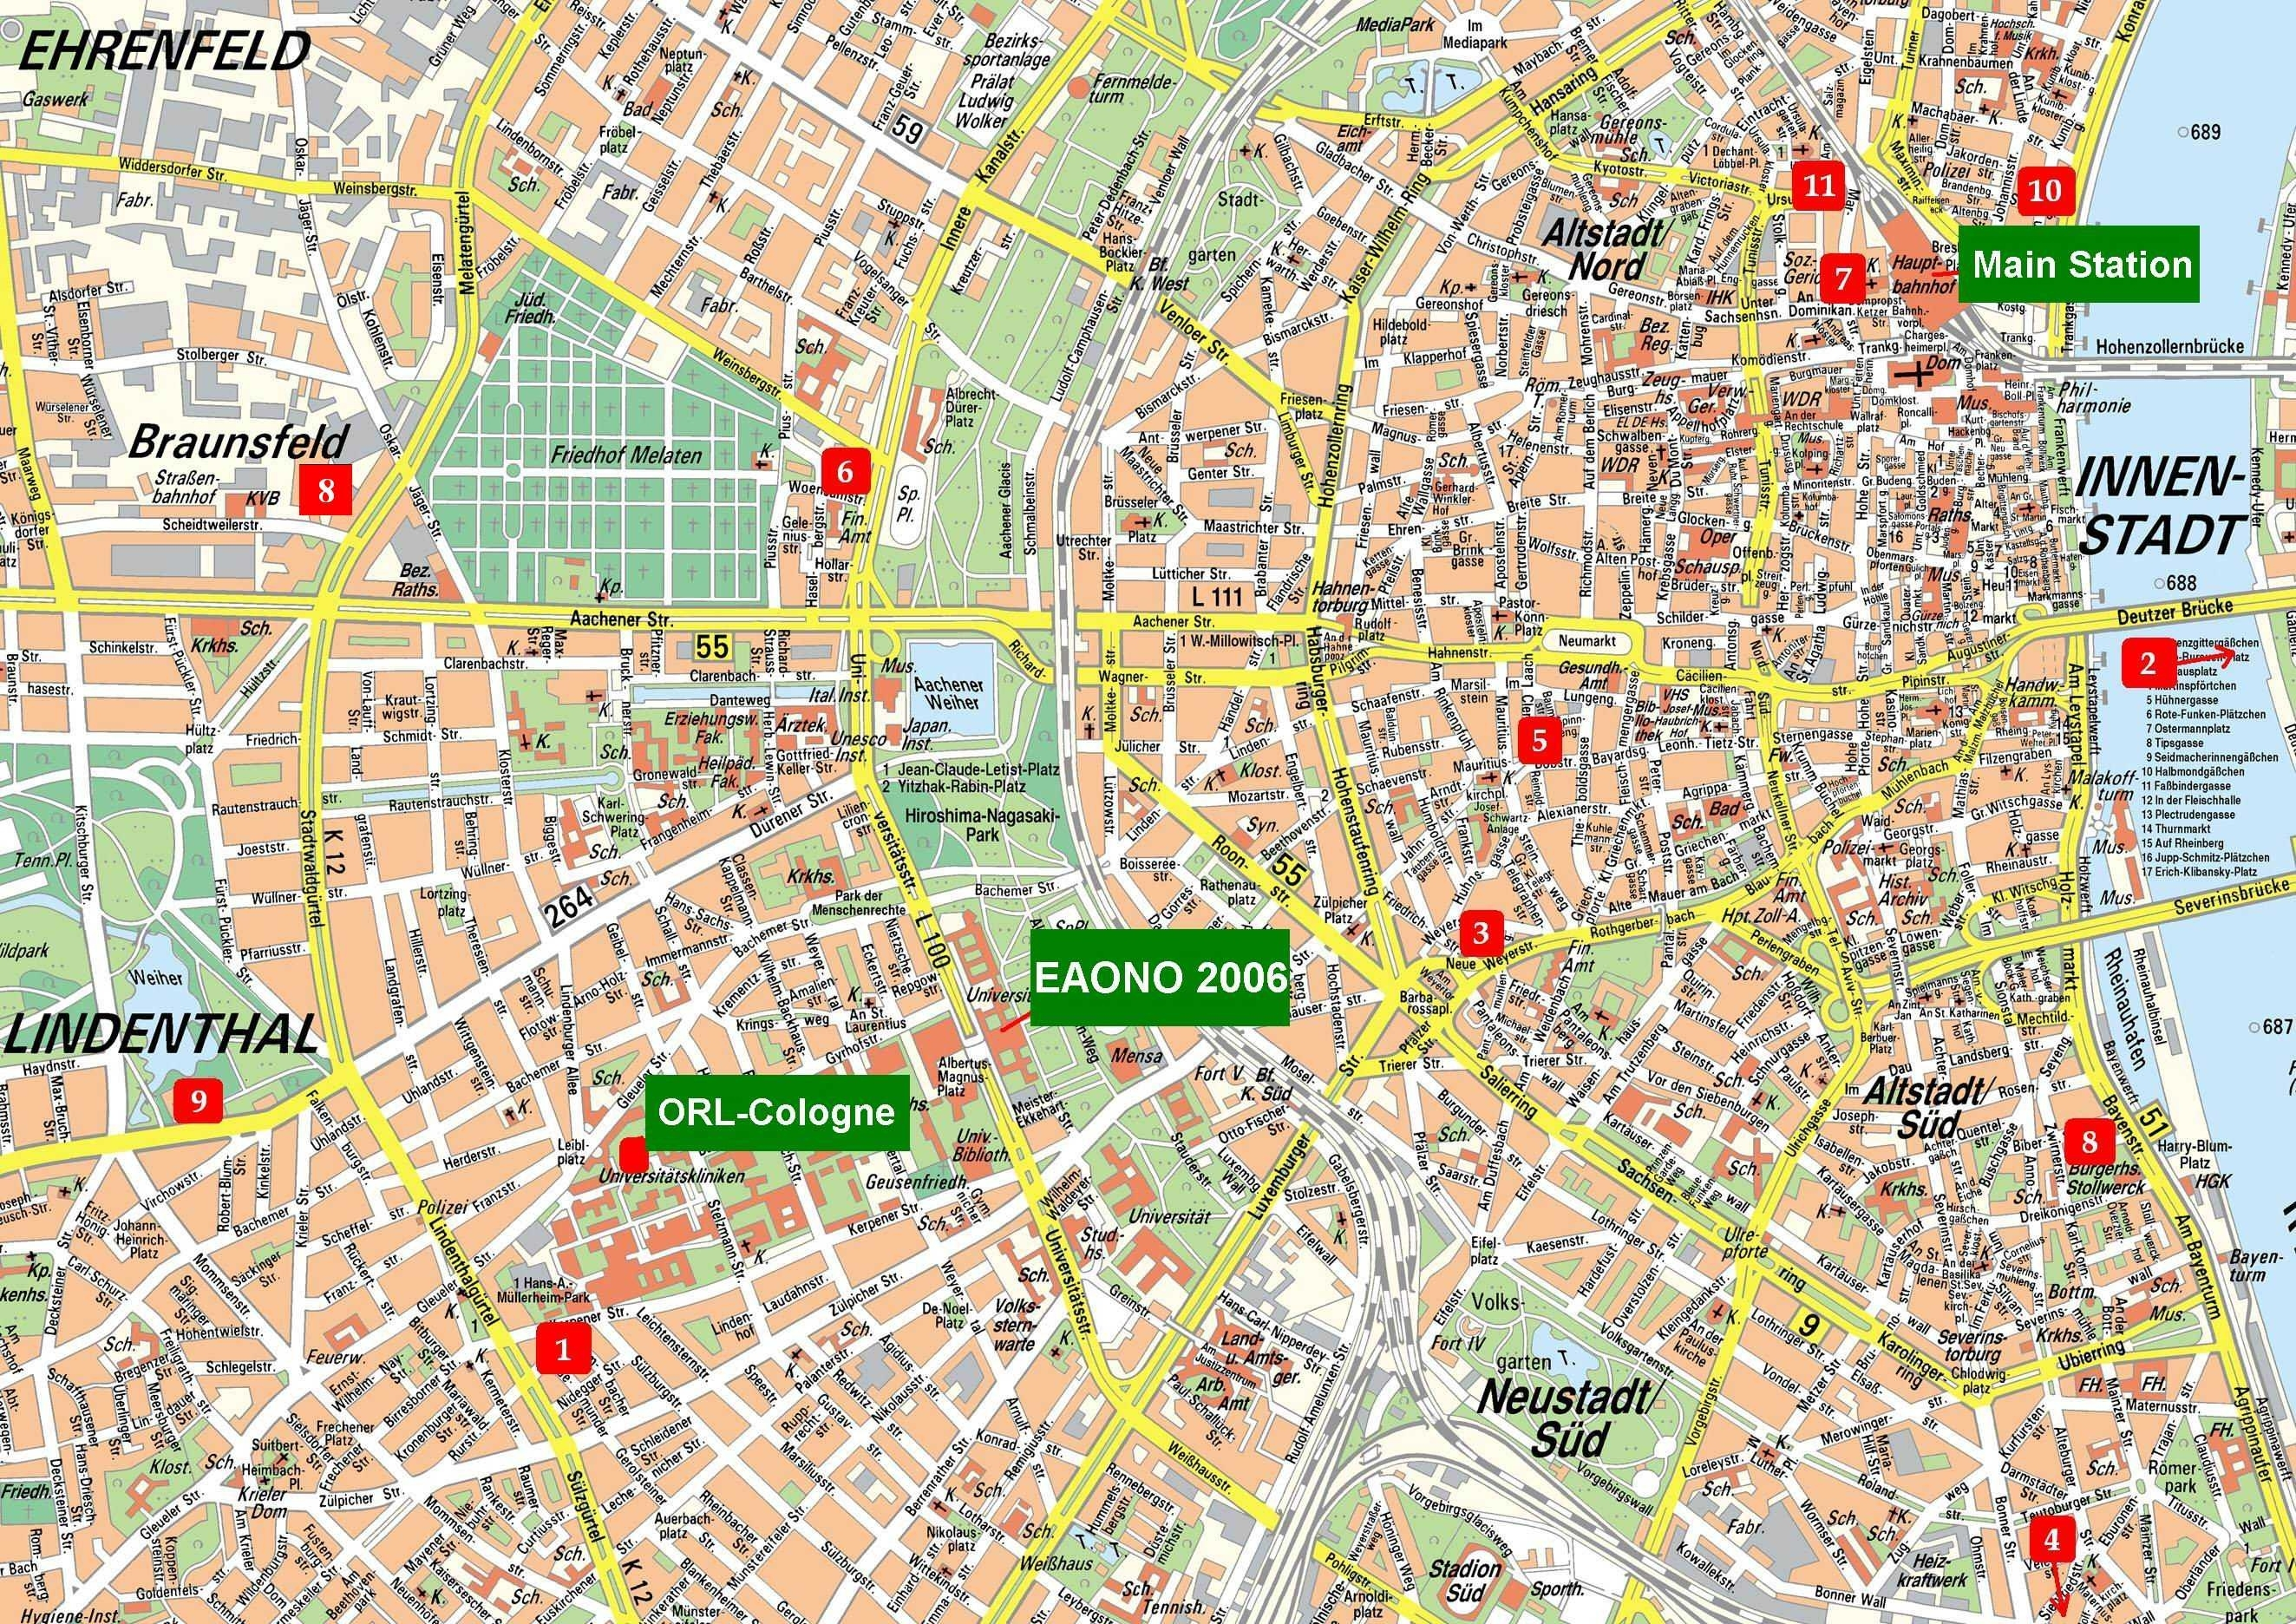 Large Cologne Maps For Free Download And Print   High-Resolution And in Street Map Of Bonn Germany